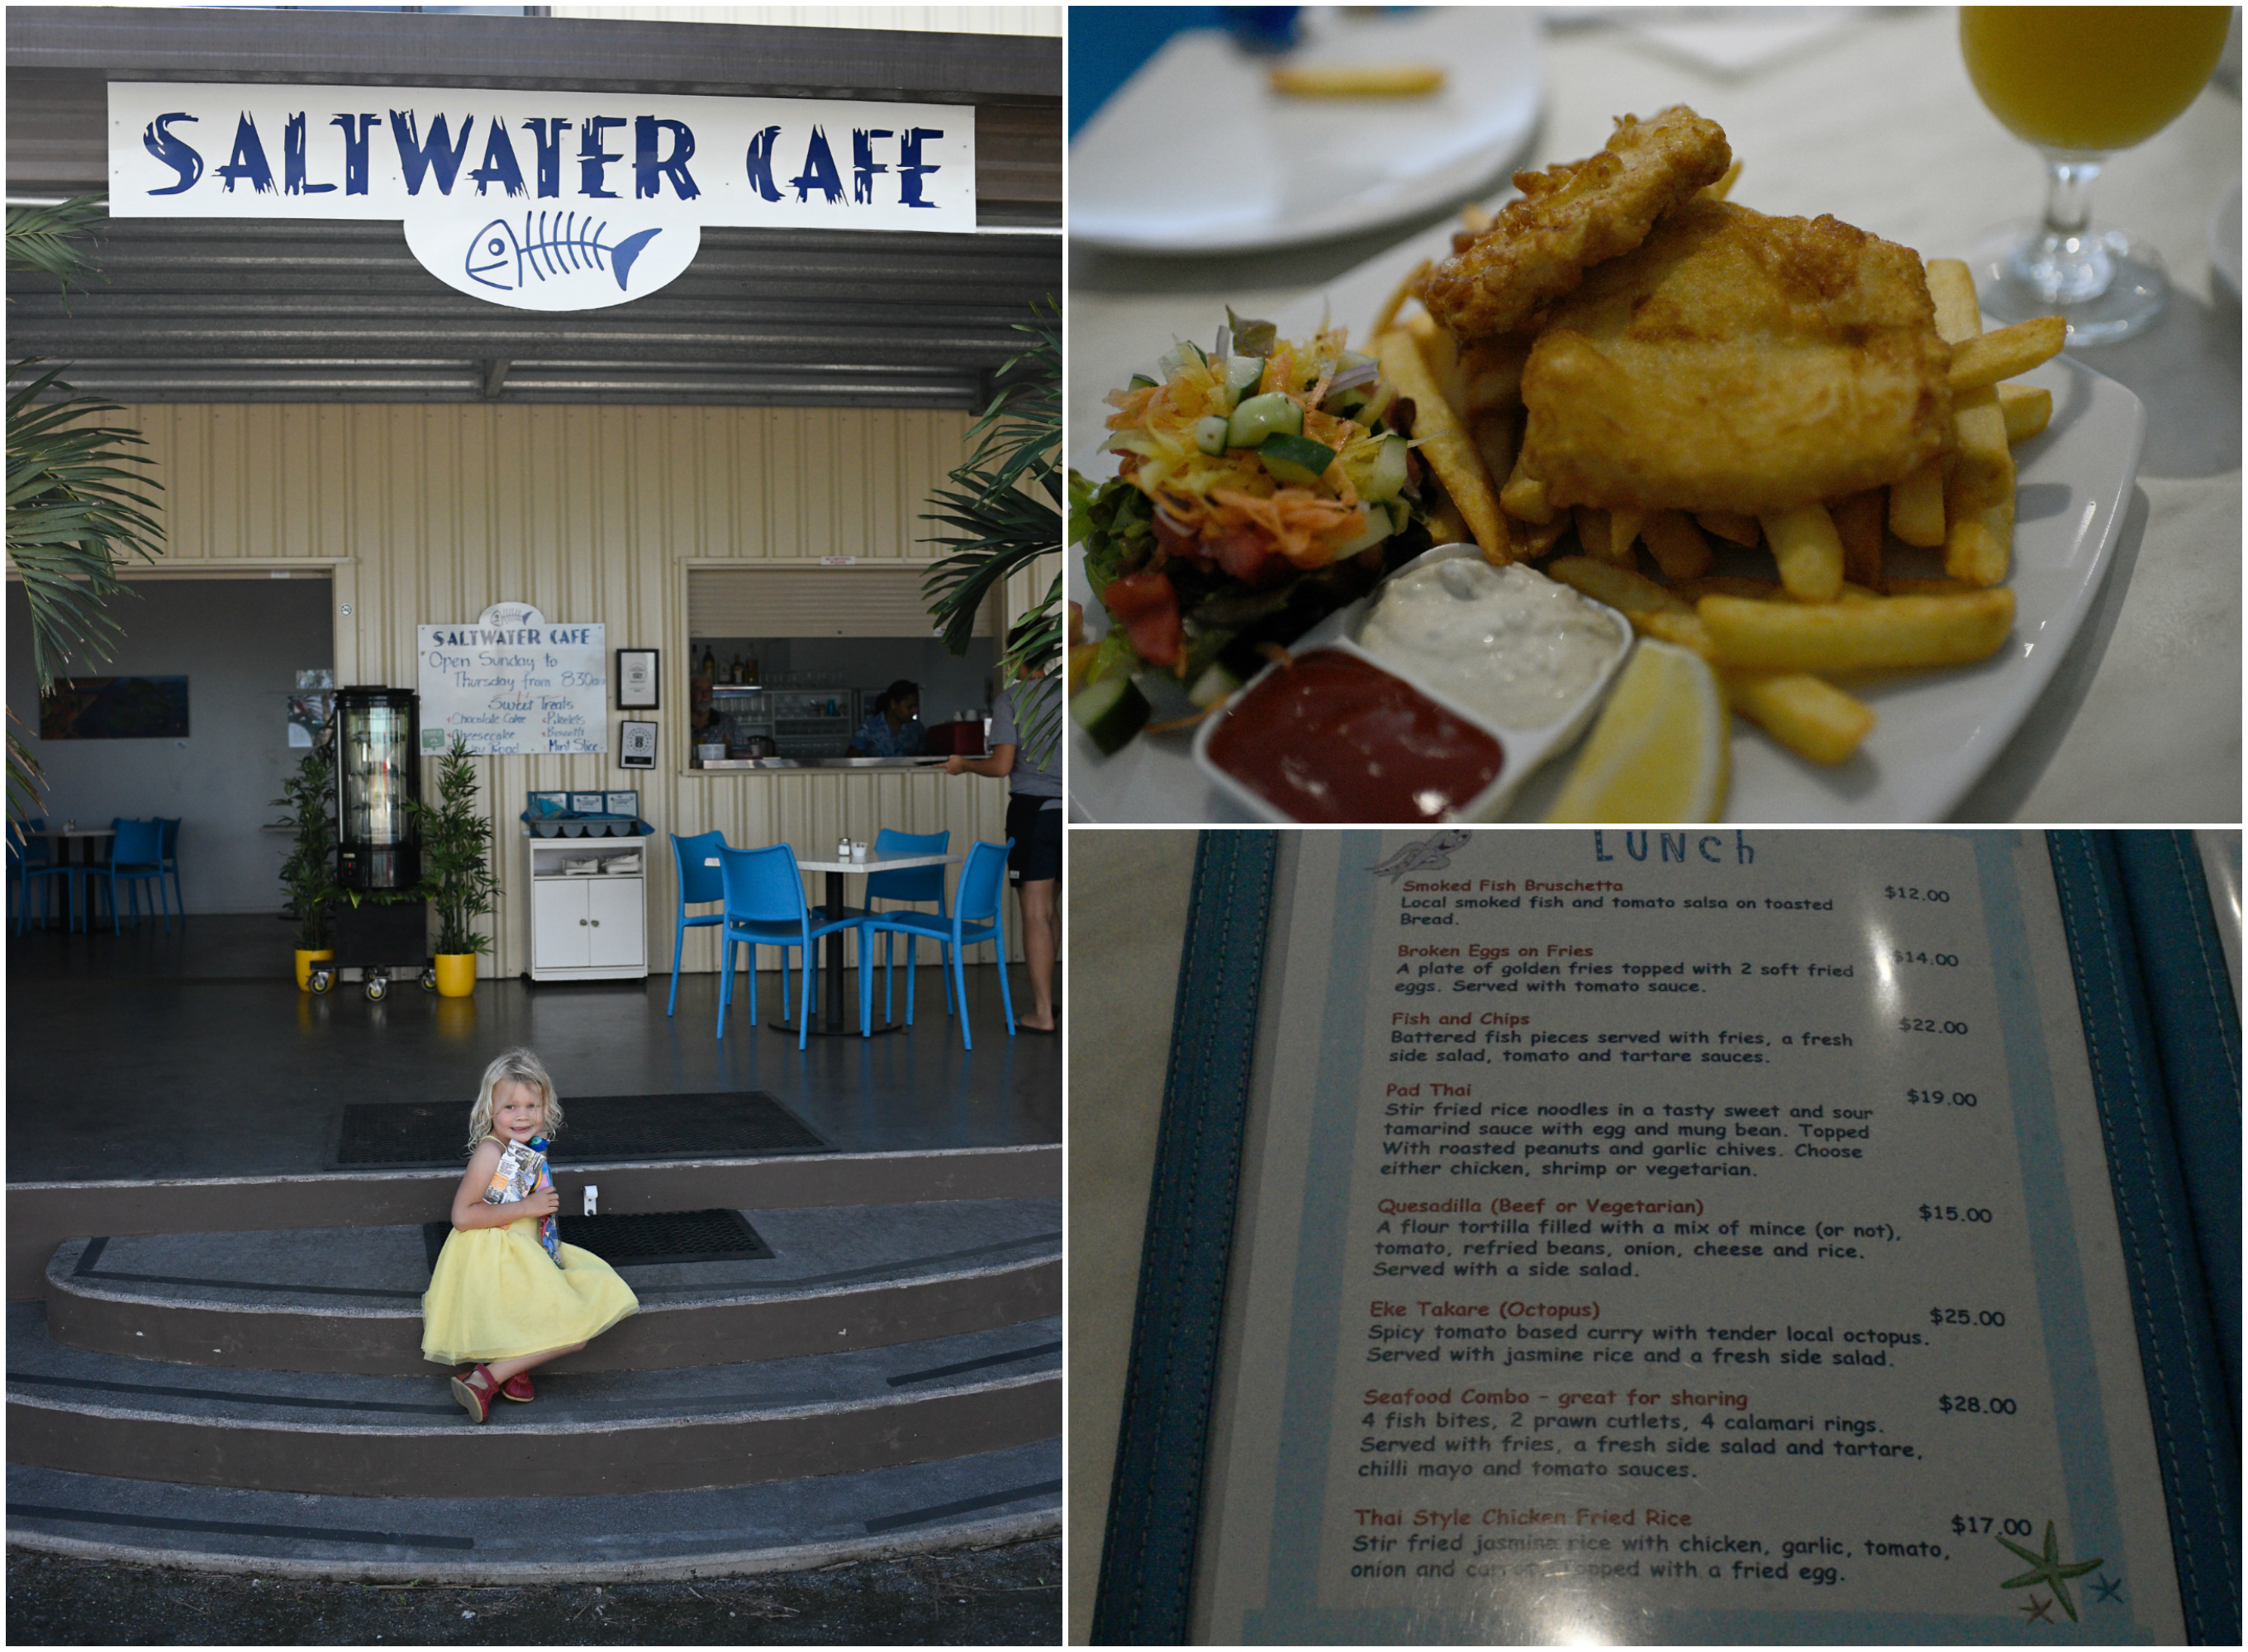 SaltwaterCafe